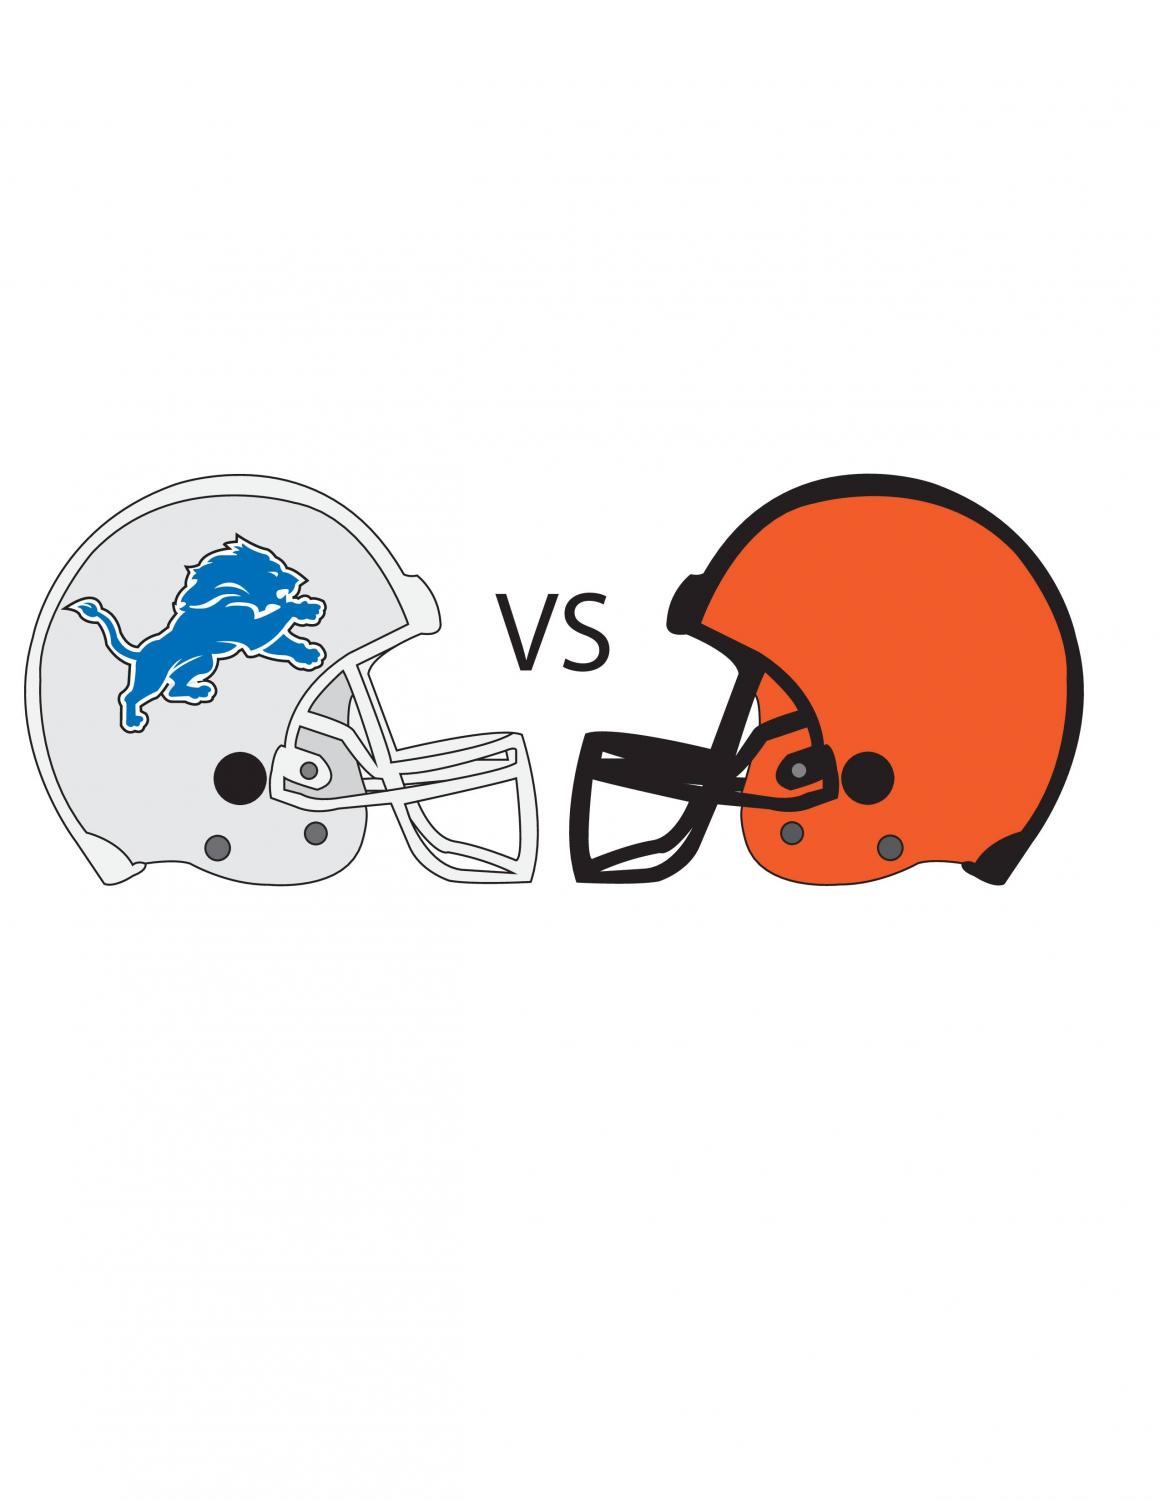 Many GL residents follow the Lions and are disappointed by how the team has been playing. The Browns have not been playing well either.